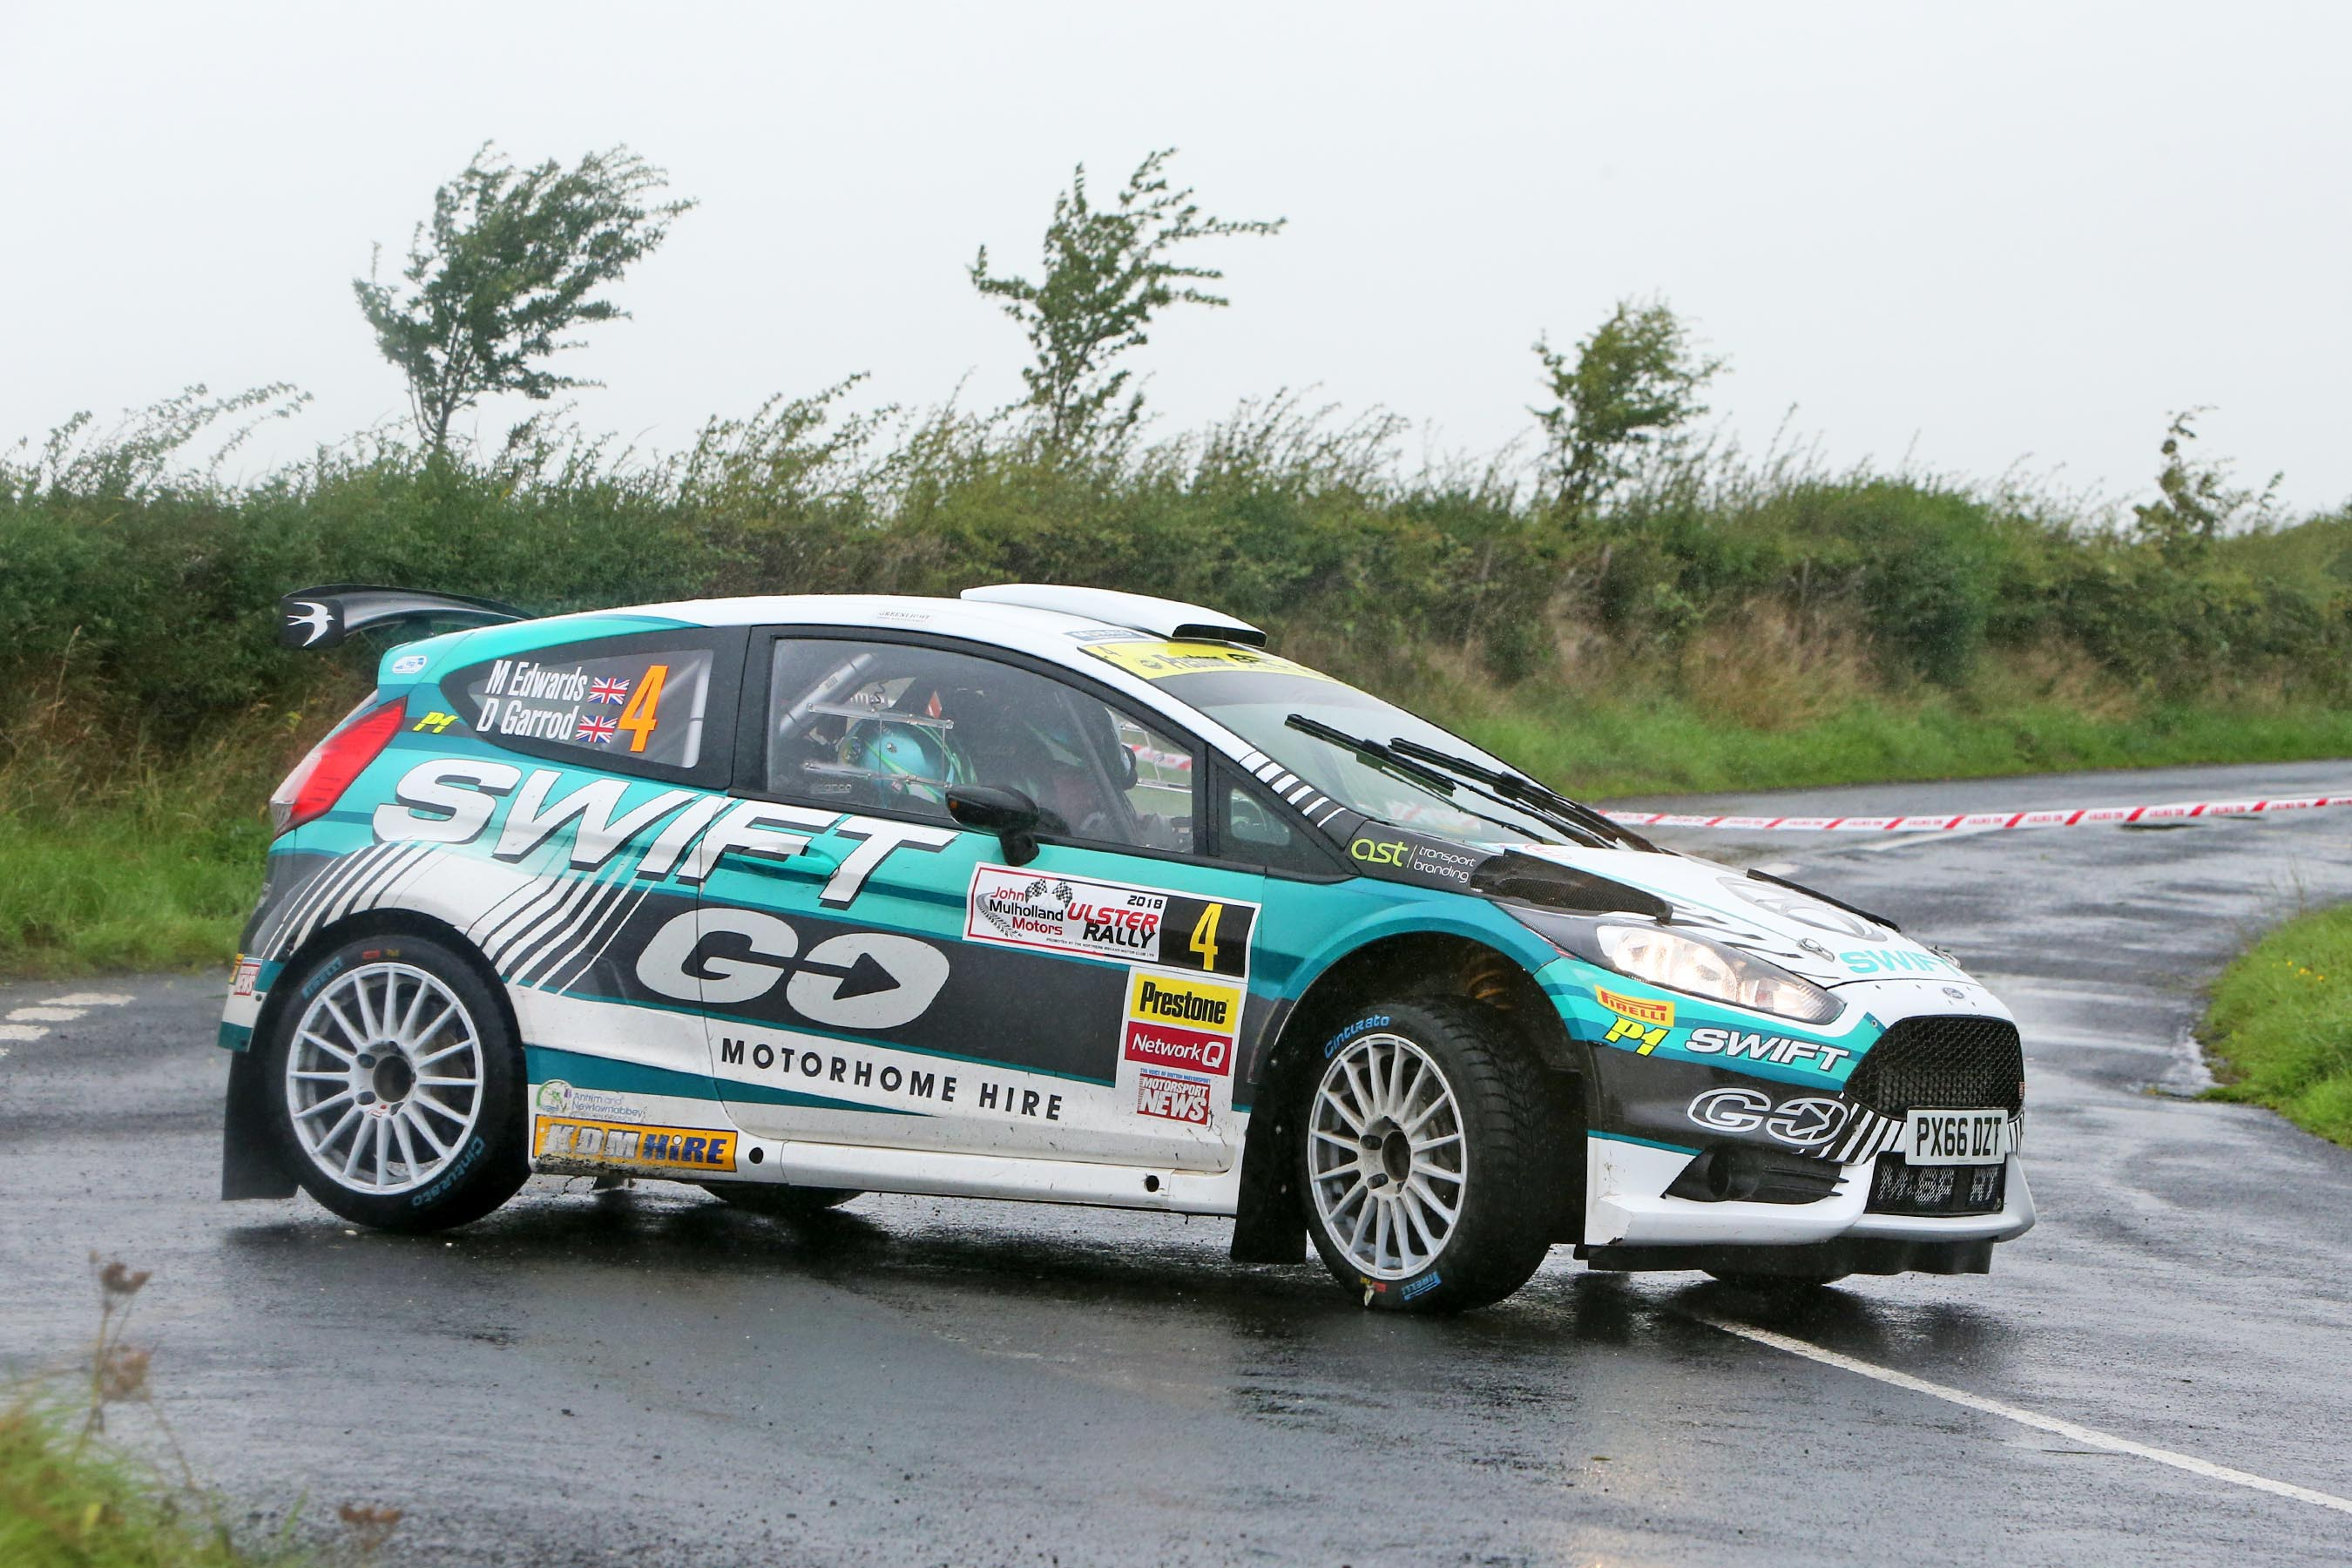 Edwards battles it out to clinch victory in a challenging Ulster contest